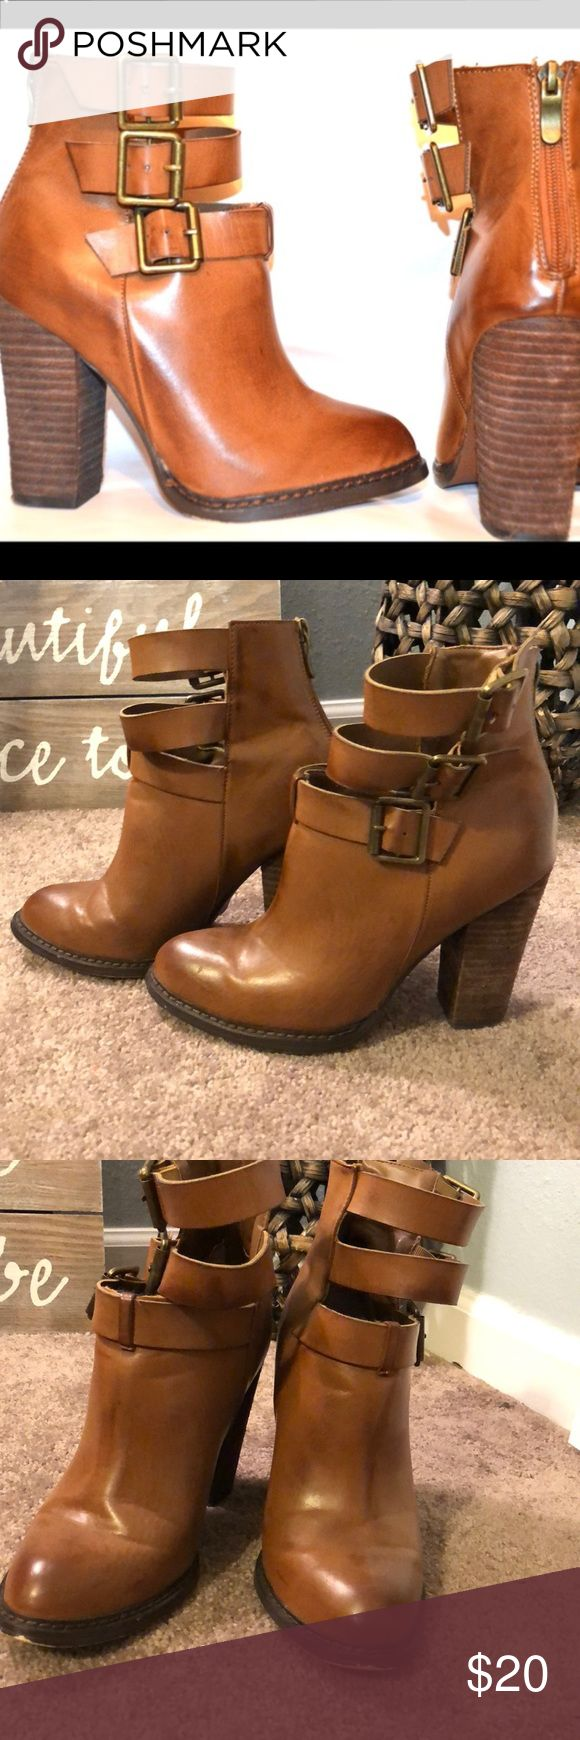 Chinese laundry gimme gimme boot Brown boots with the buckle straps. Chunky heel pretty comfortable. Looks super cute with skinny jeans. Worn a few times still in good condition. A little mark near toes and of course worn on bottoms as shown in pictures. Chinese Laundry Shoes Ankle Boots & Booties